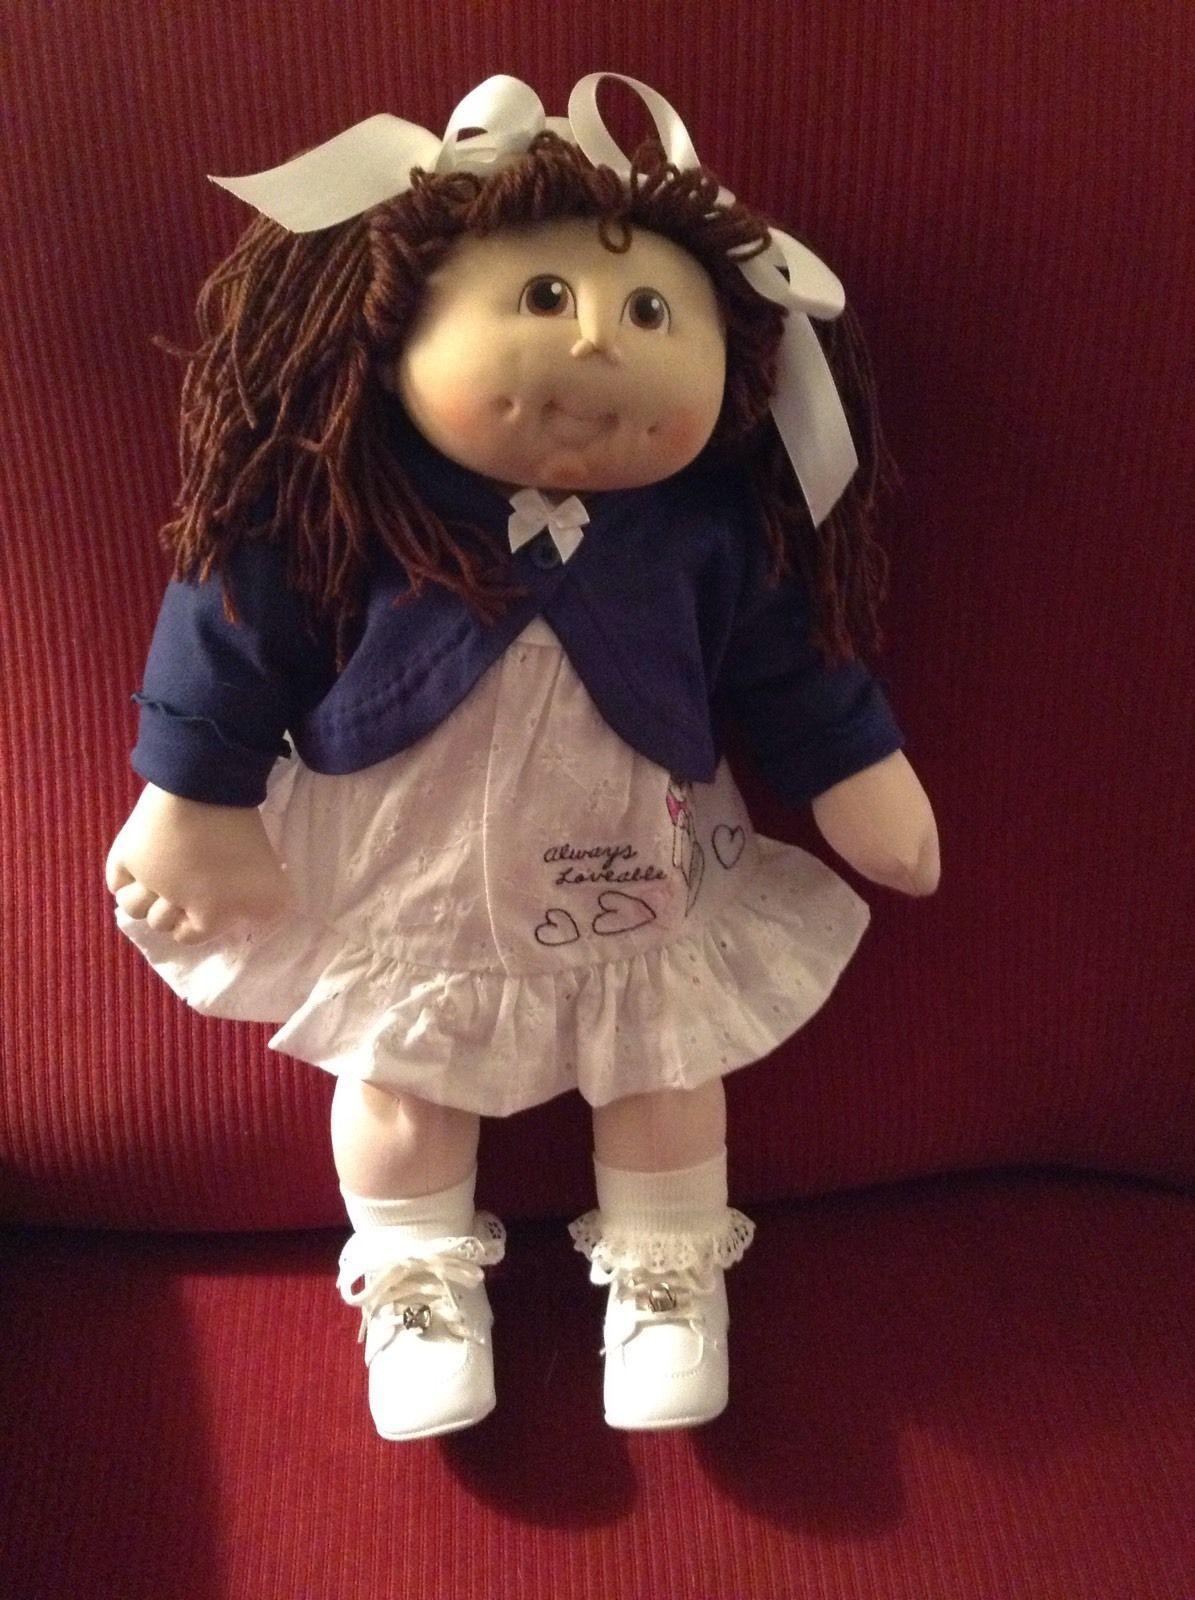 Cabbage Patch Like 19 Soft Body With Vinyl Head Doll Ggreduced From 48 50 Ebay Cabbage Patch Dolls Vintage Cabbage Patch Dolls Cabbage Patch